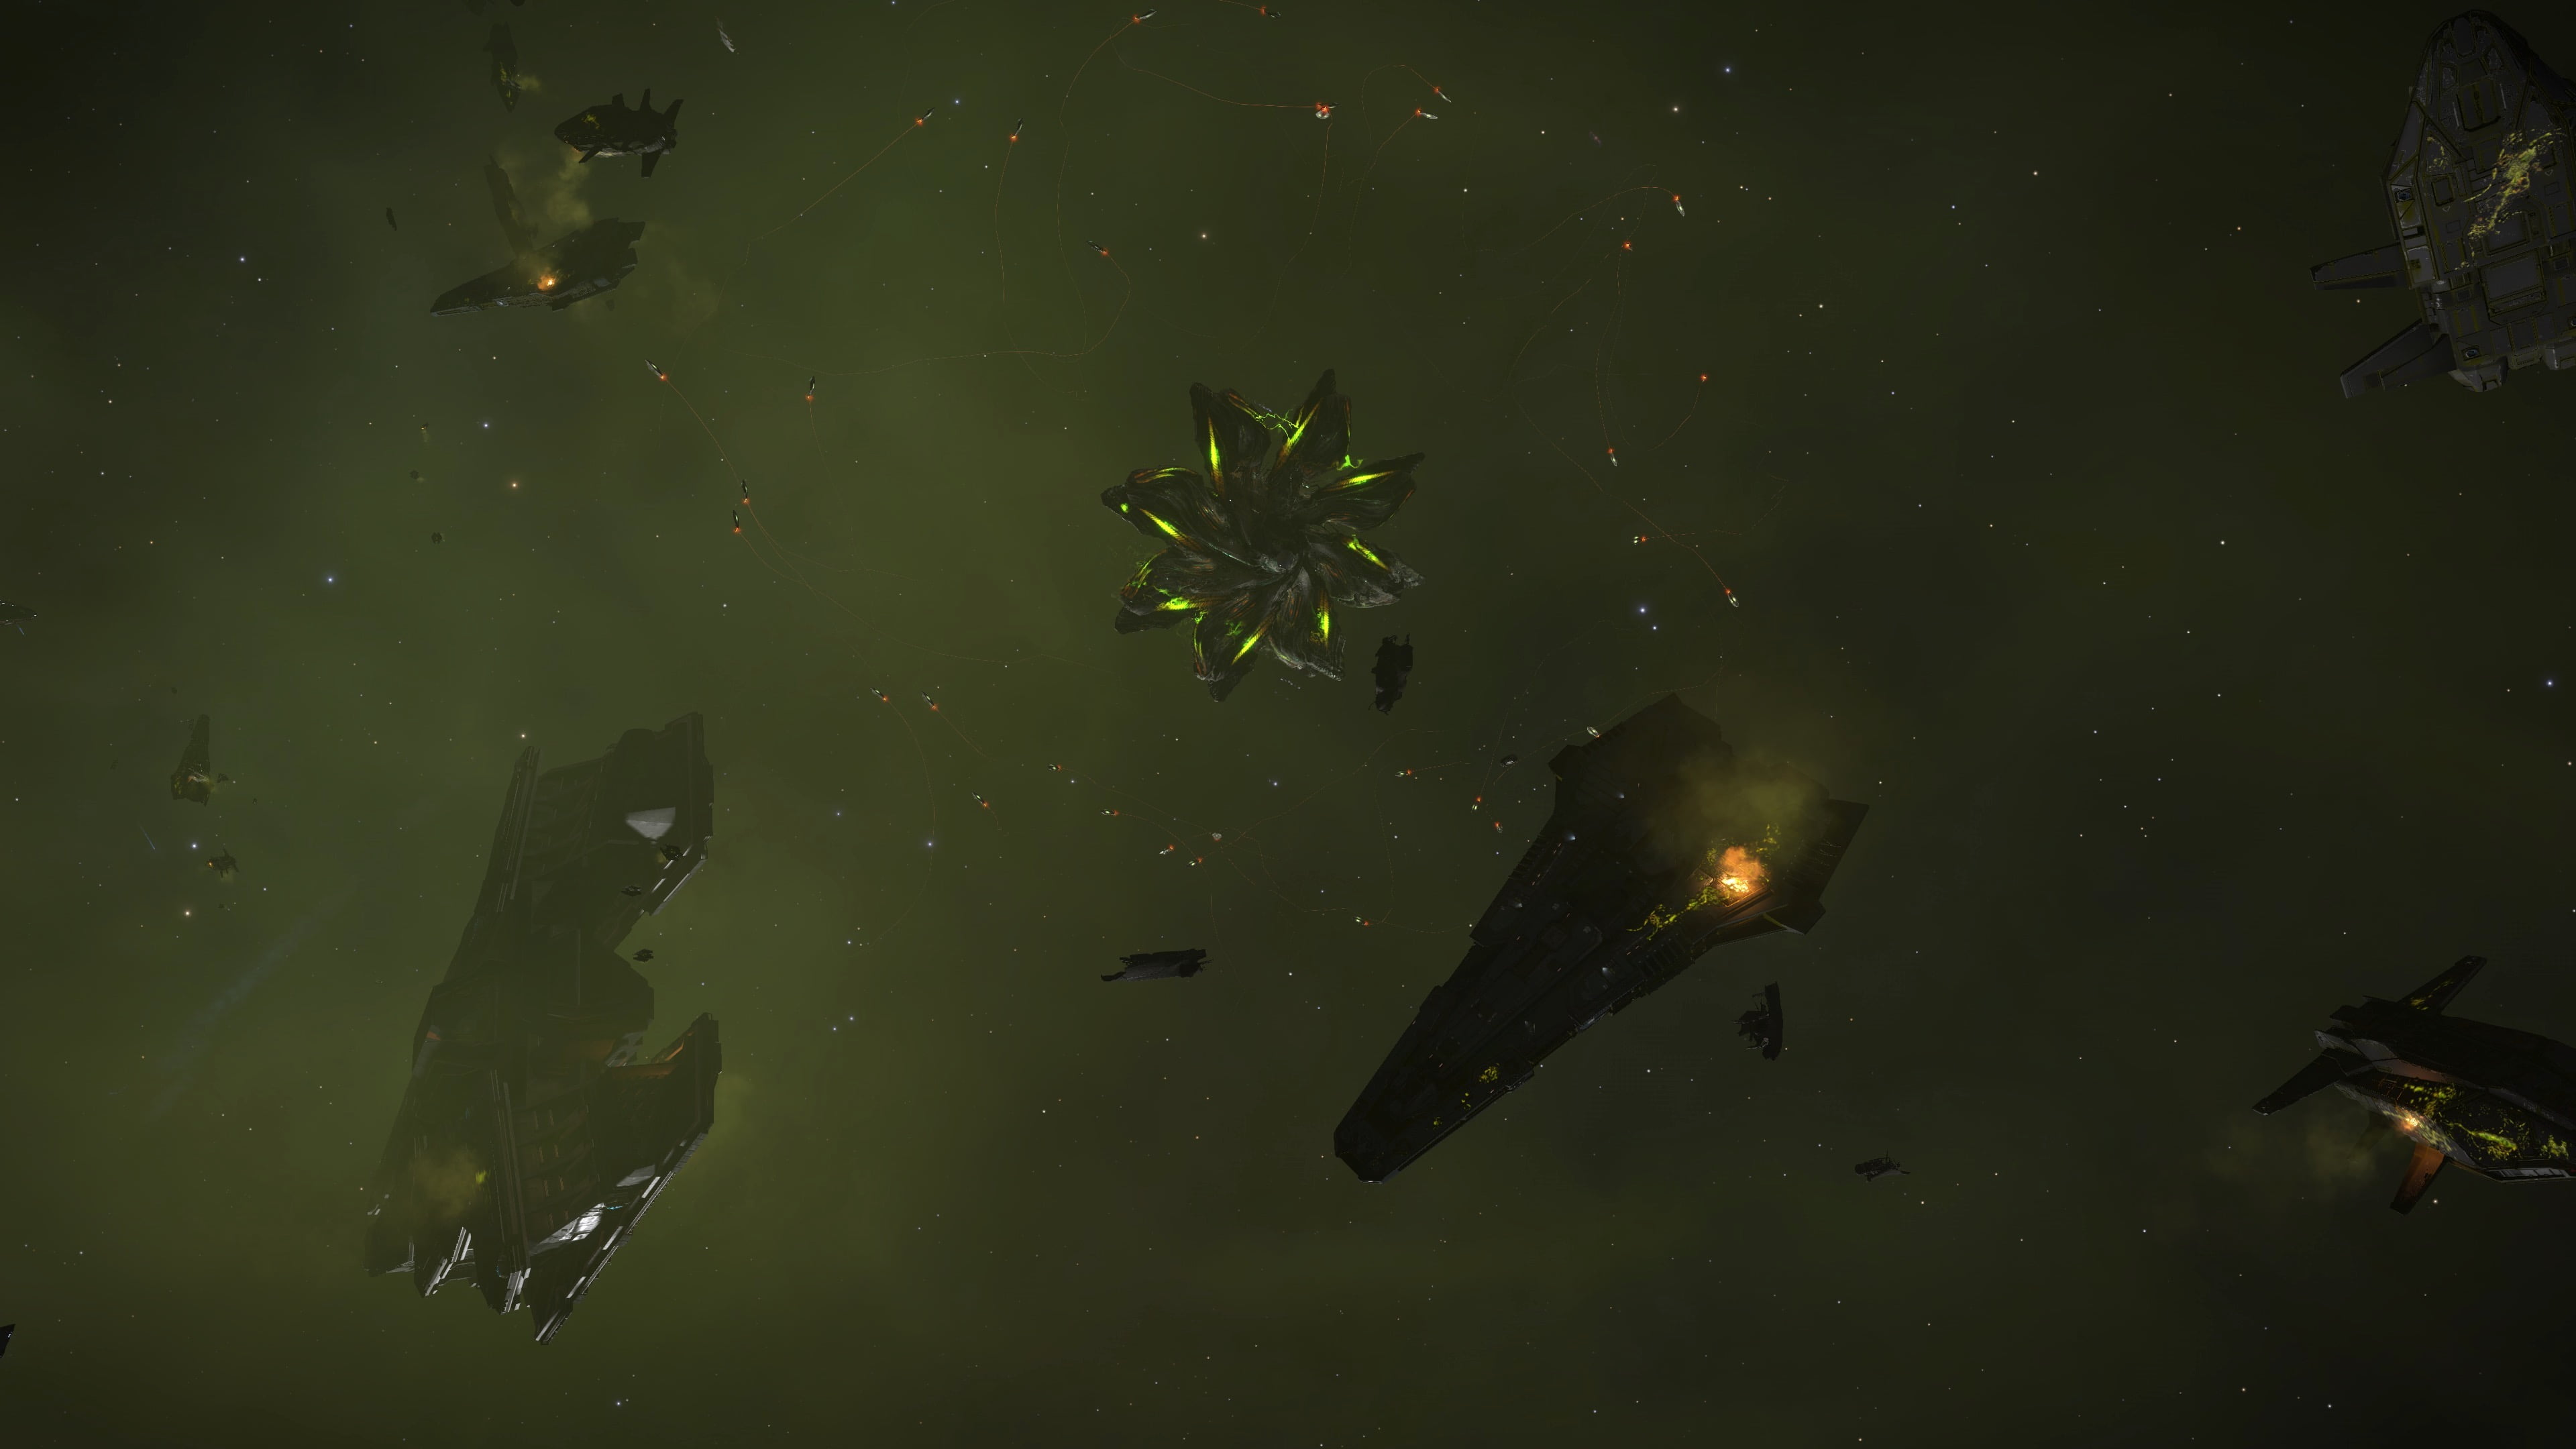 Pleiades Sector IR-W d1-55 Distress Call